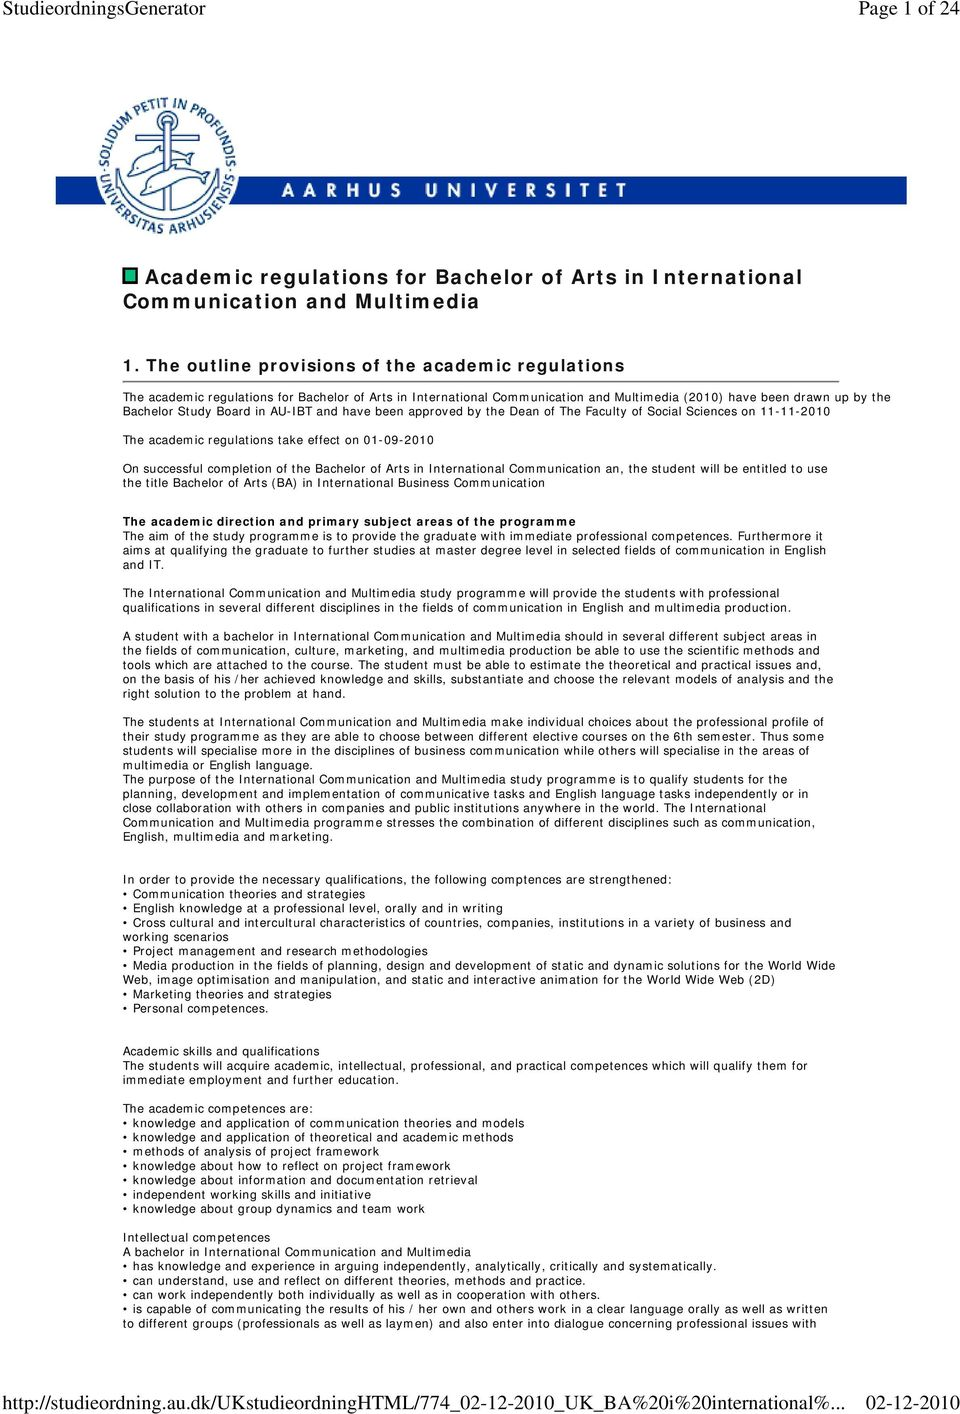 AU-IBT and have been approved by the Dean of The Faculty of Social Sciences on --200 The academic regulations take effect on 0-09-200 On successful completion of the Bachelor of Arts in International